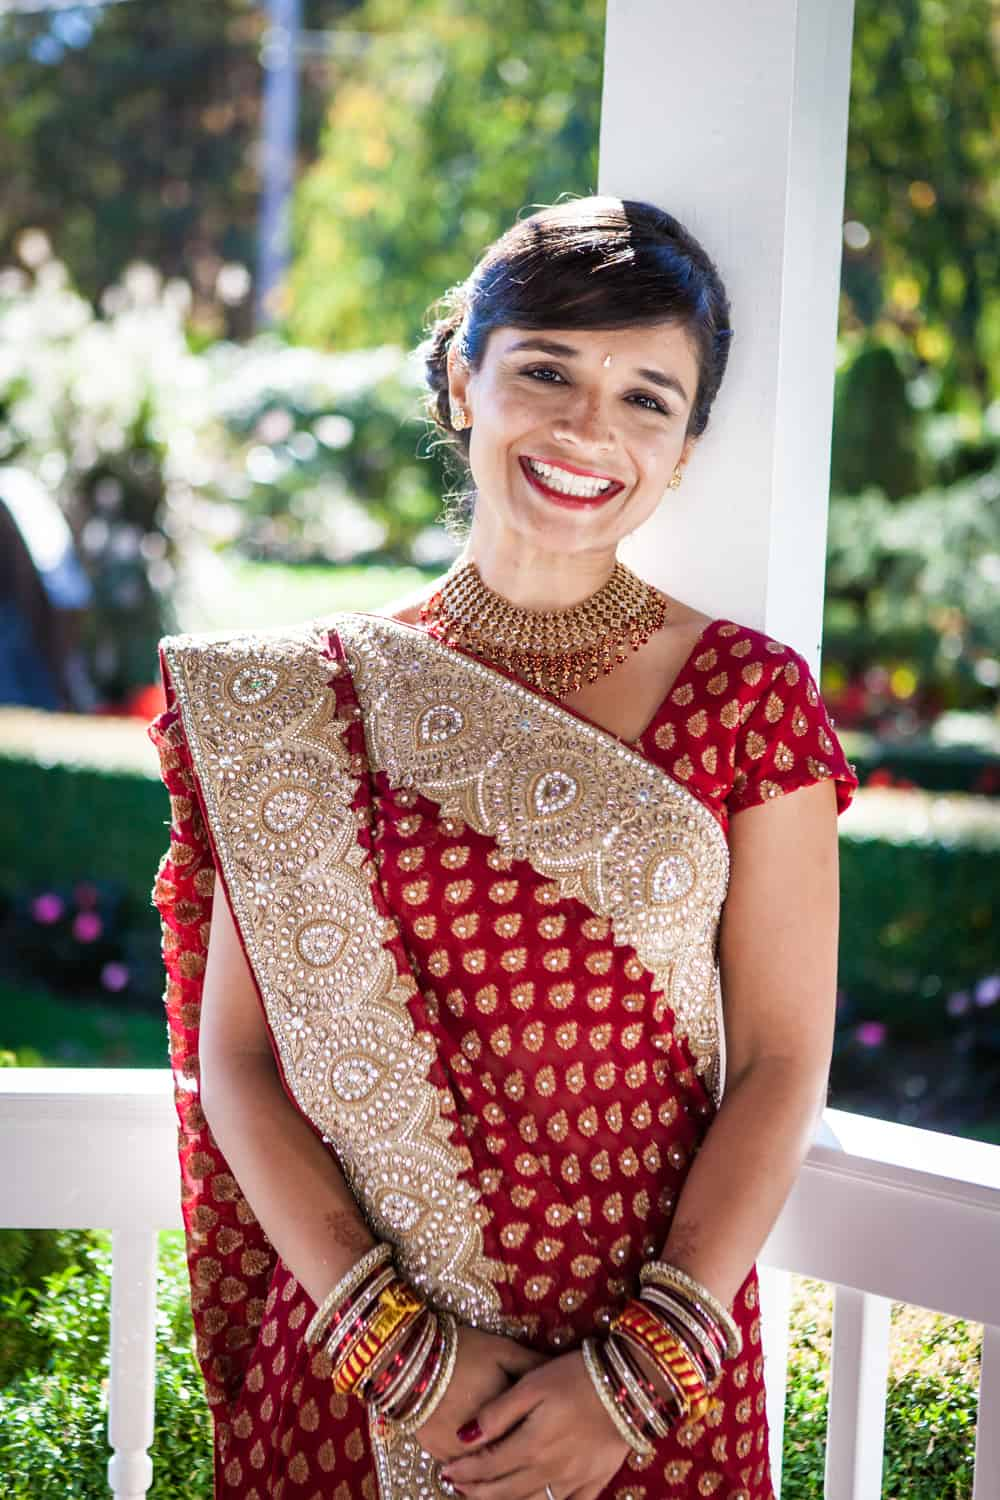 Bride in gazebo wearing red traditional sari at an East Wind Inn wedding